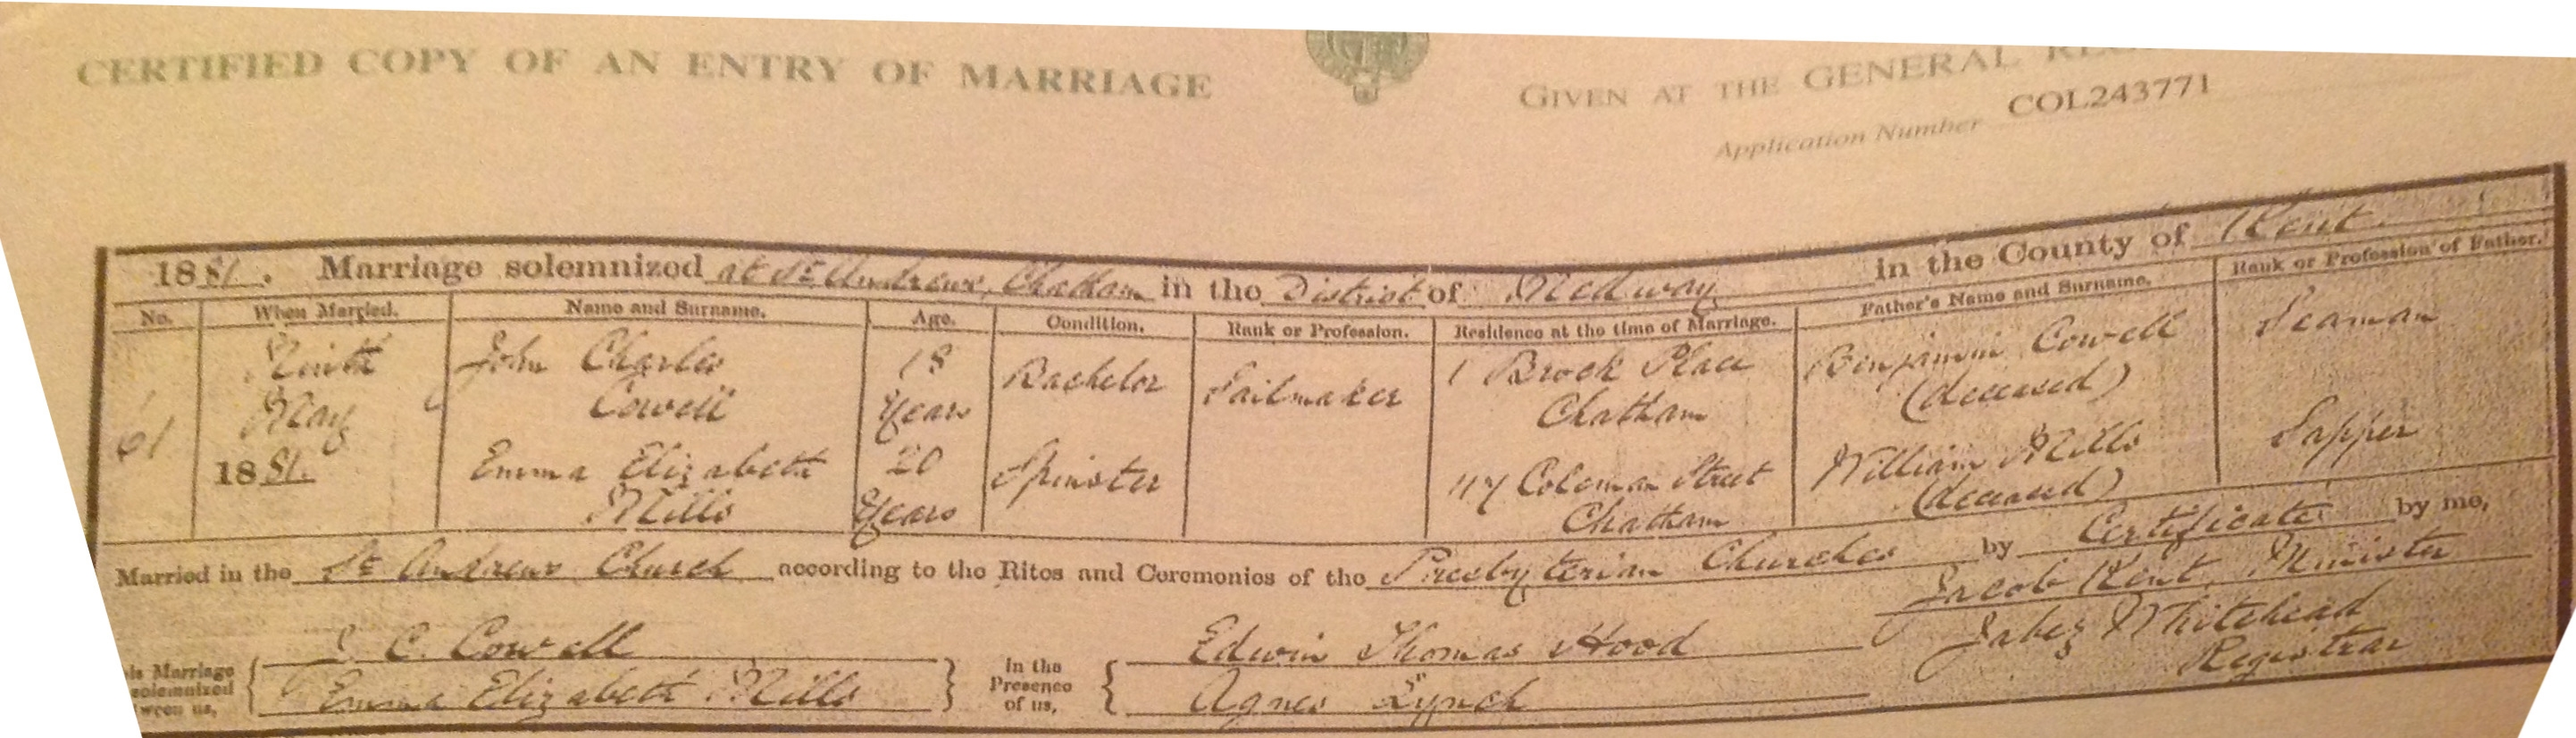 John Cowell - Emma Mills - marriage certificate